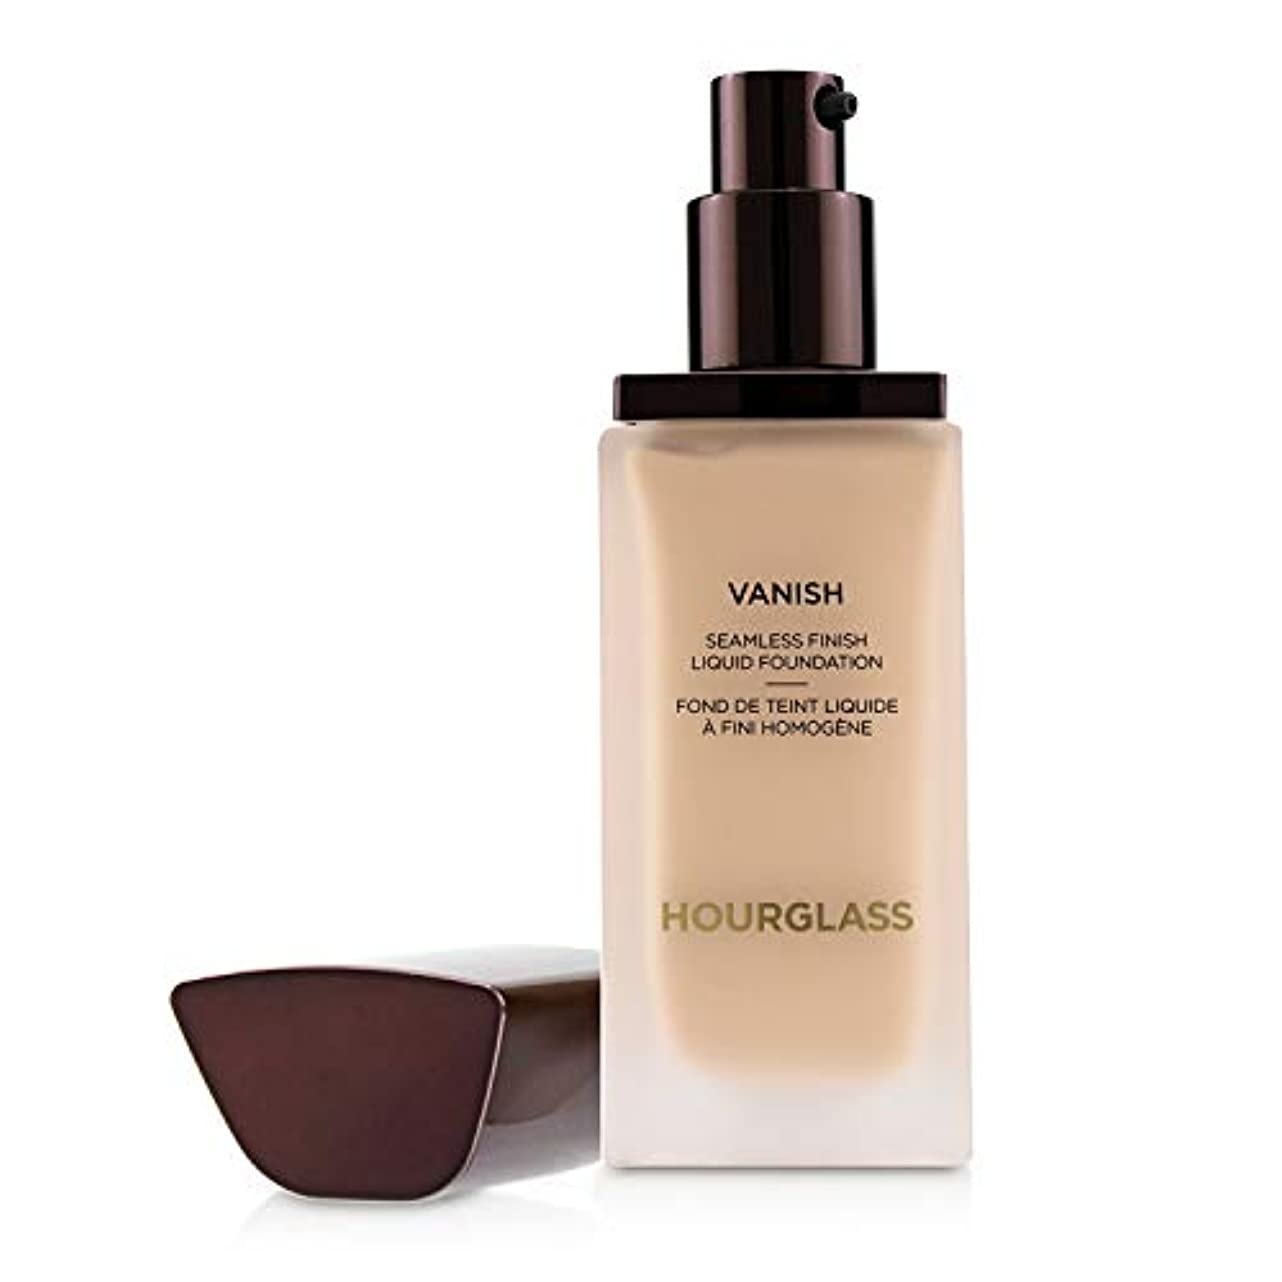 アワーグラス Vanish Seamless Finish Liquid Foundation - # Cream 25ml/0.84oz並行輸入品